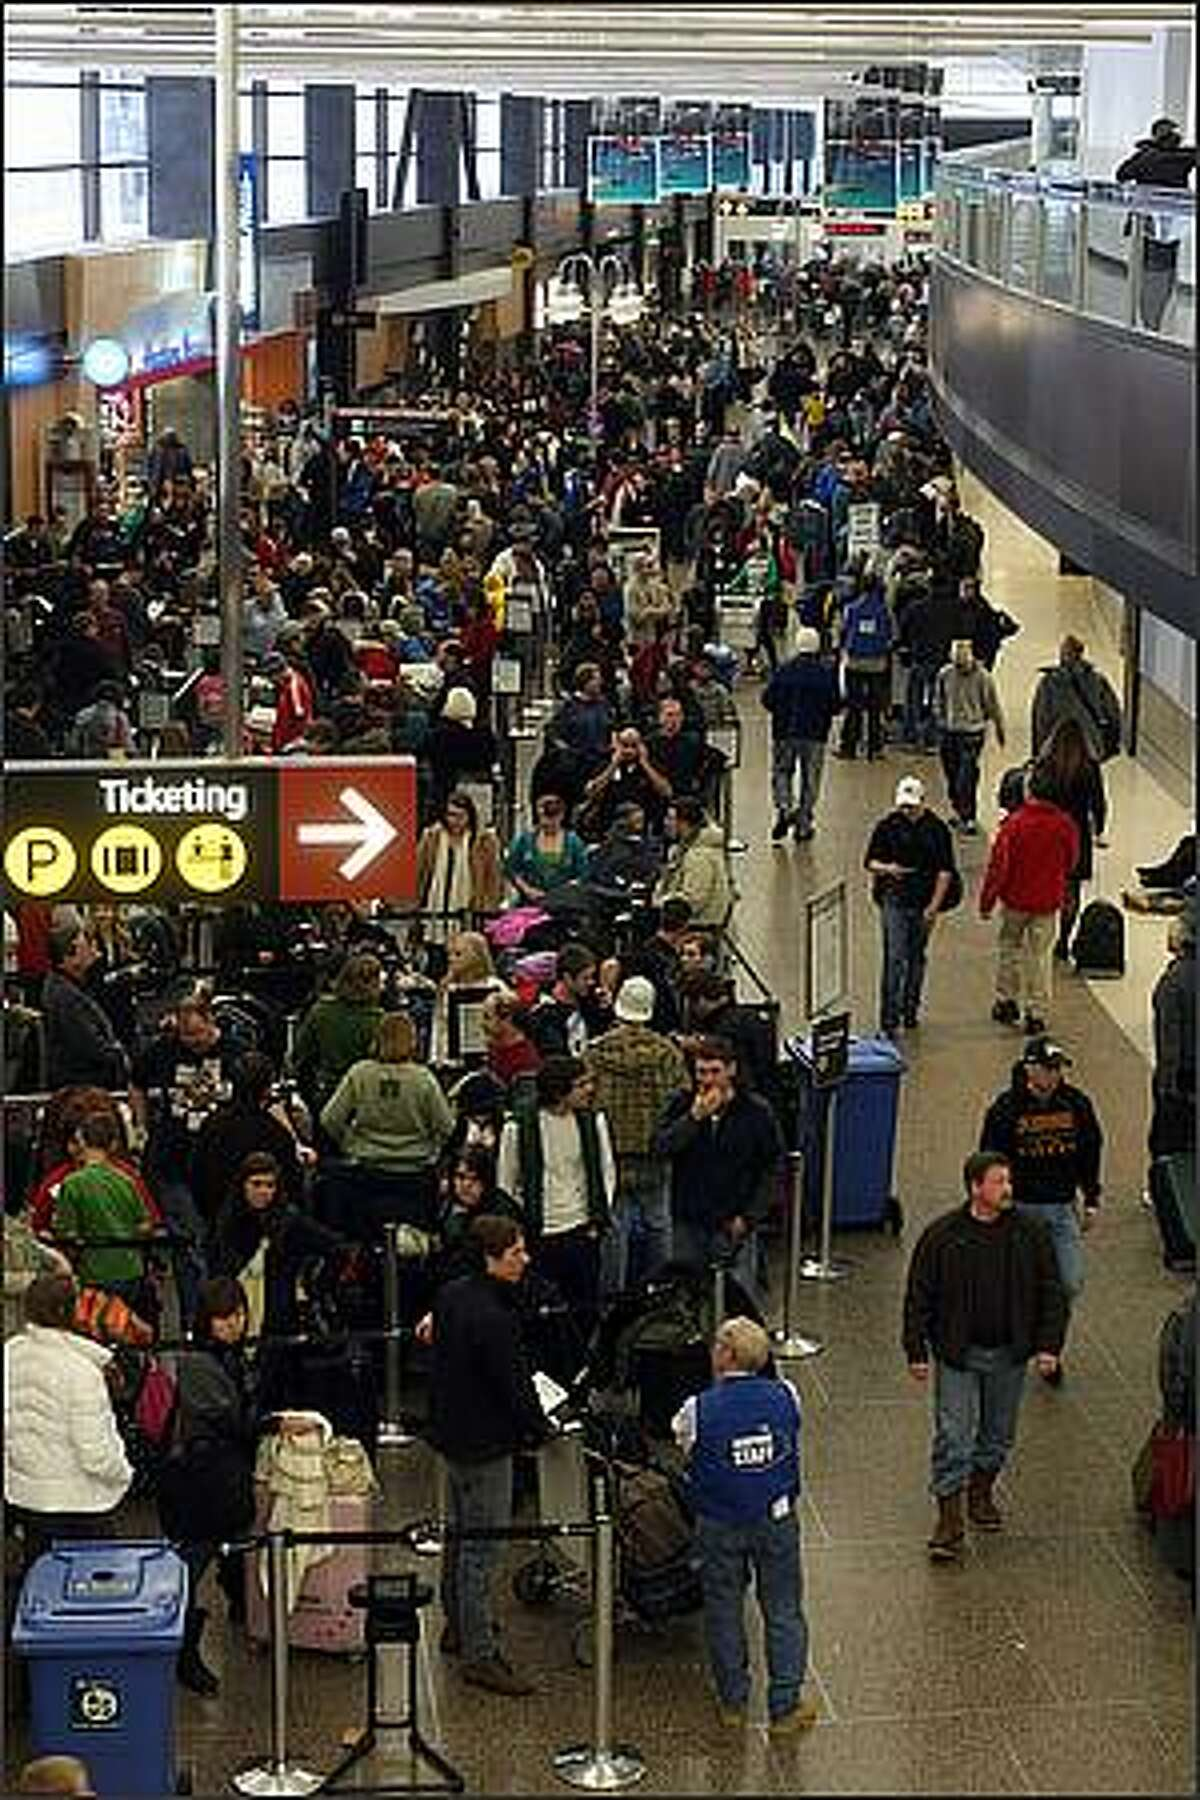 Passengers wait in long lines at a security checkpoint at Sea-Tac Airport.